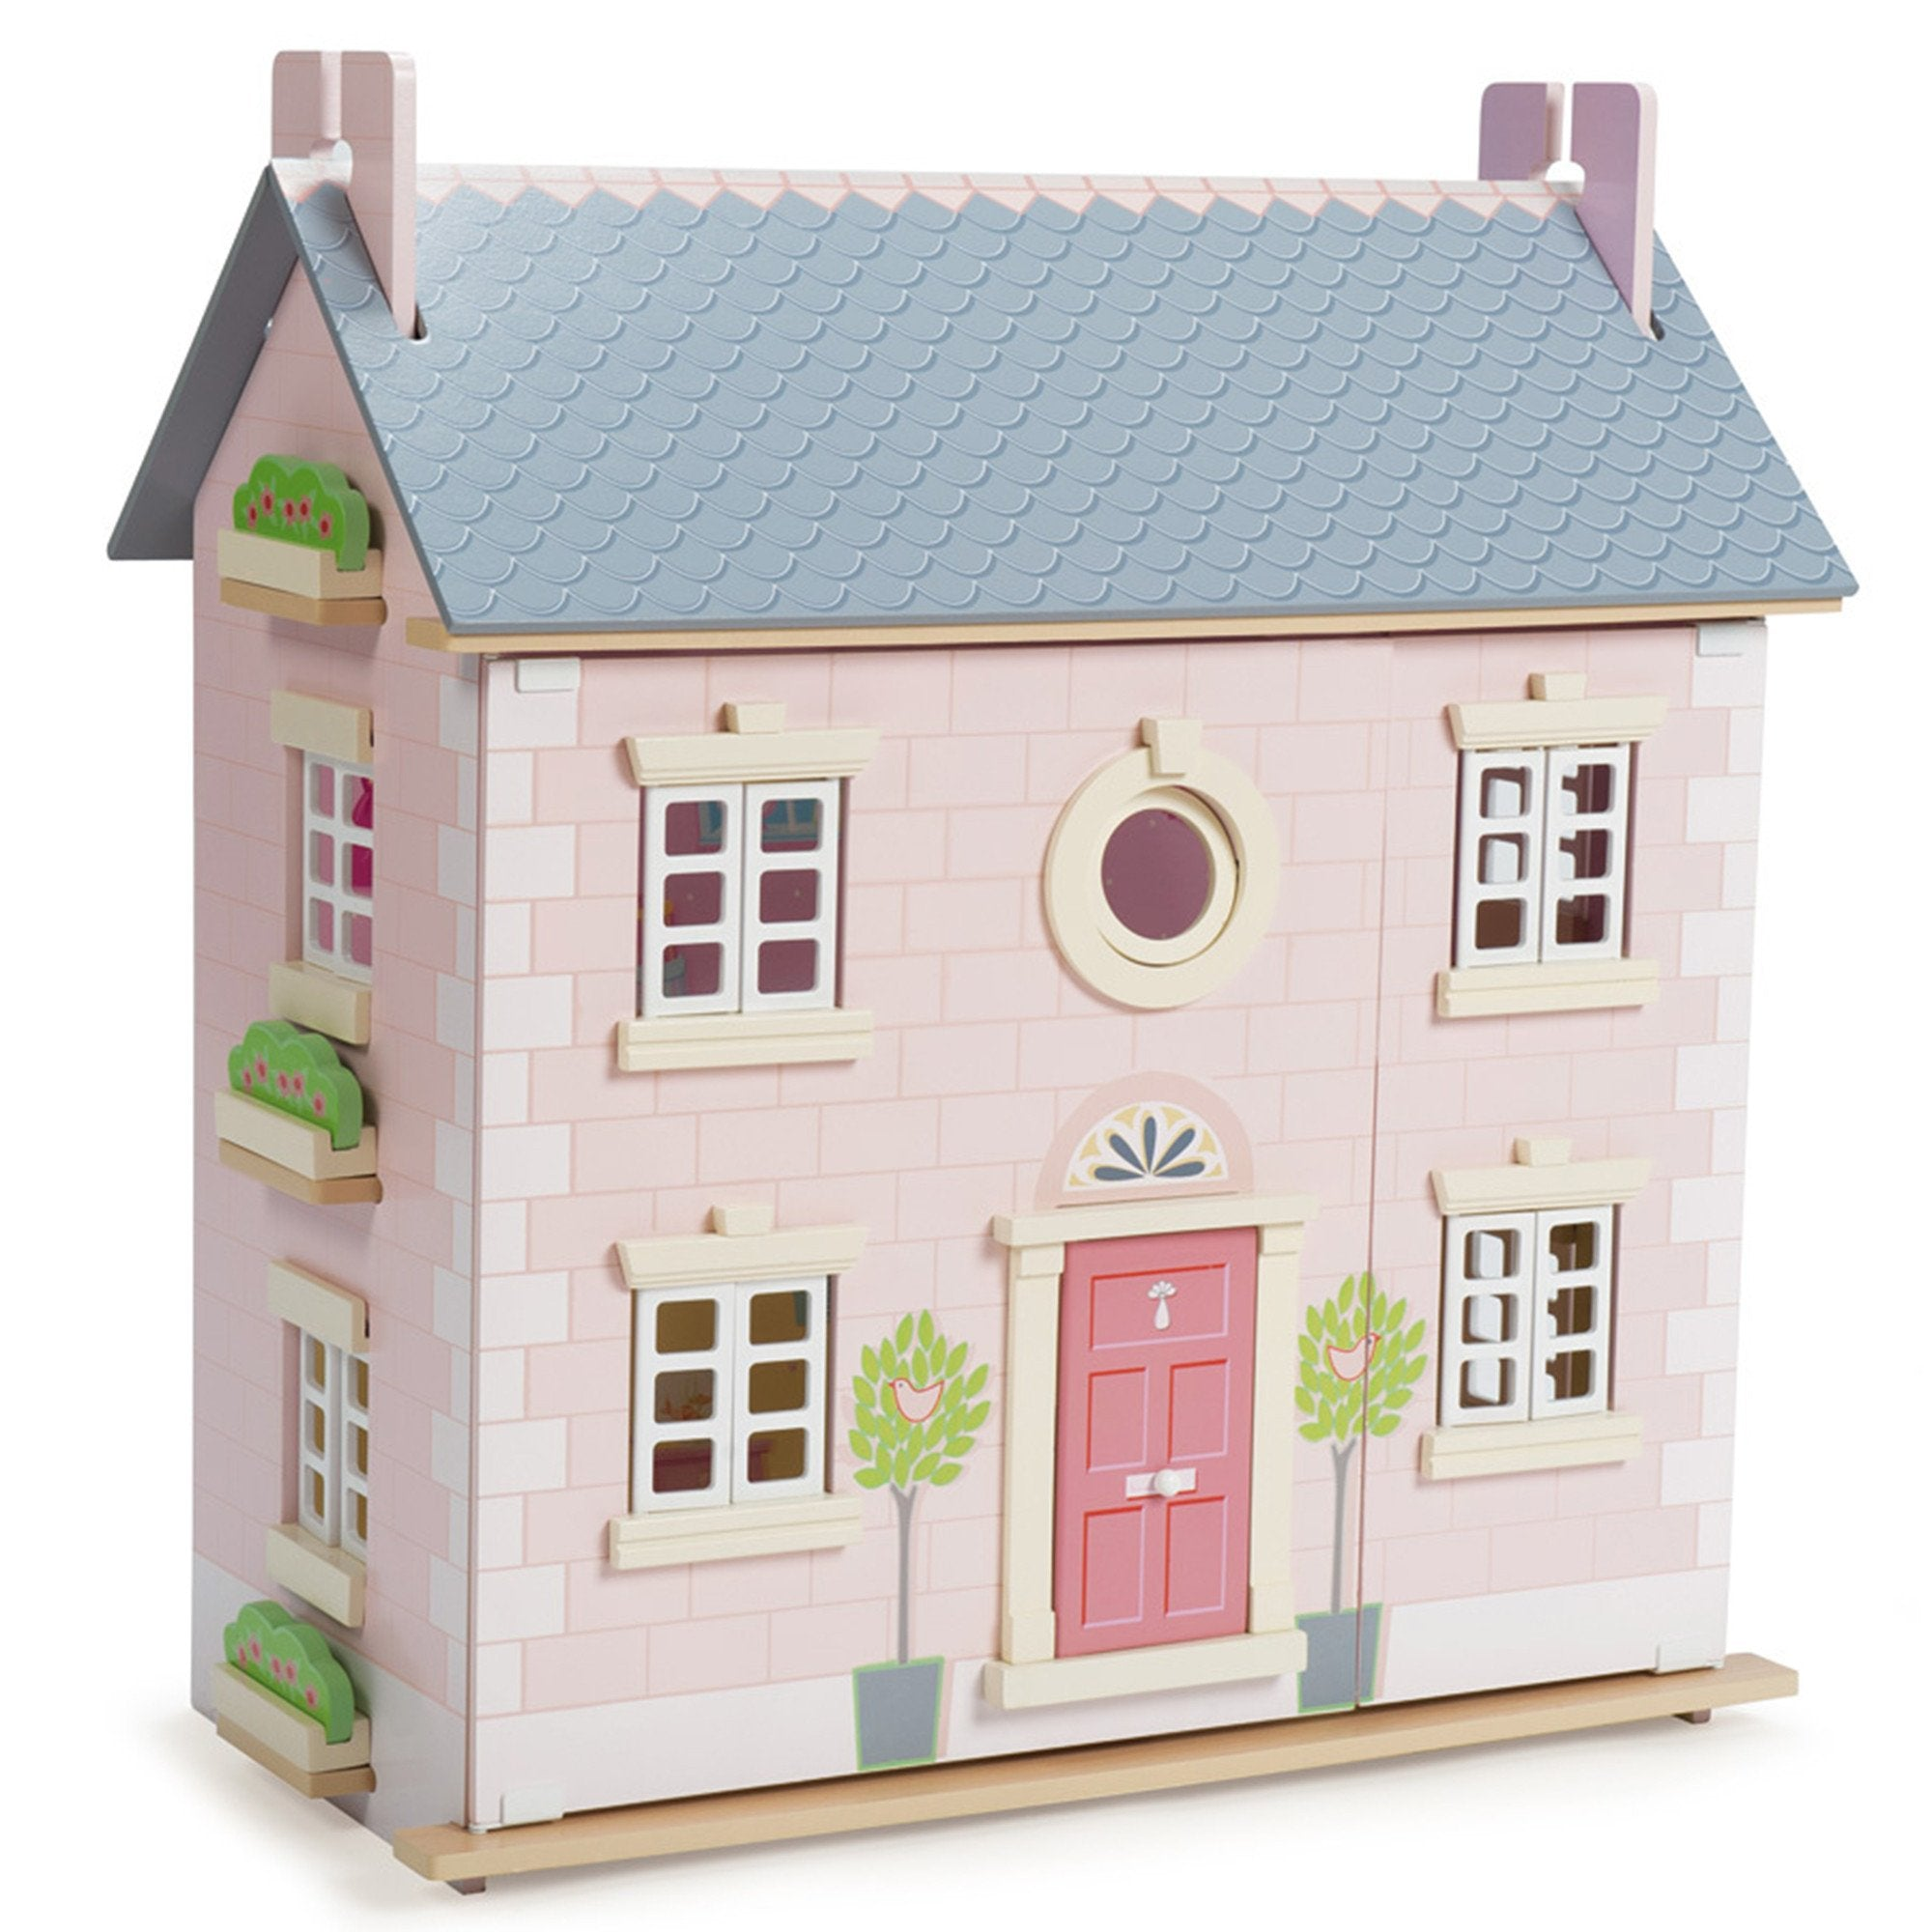 Le Toy Van Bay Tree House Le Toy Van Dollshouses at Little Earth Nest Eco Shop